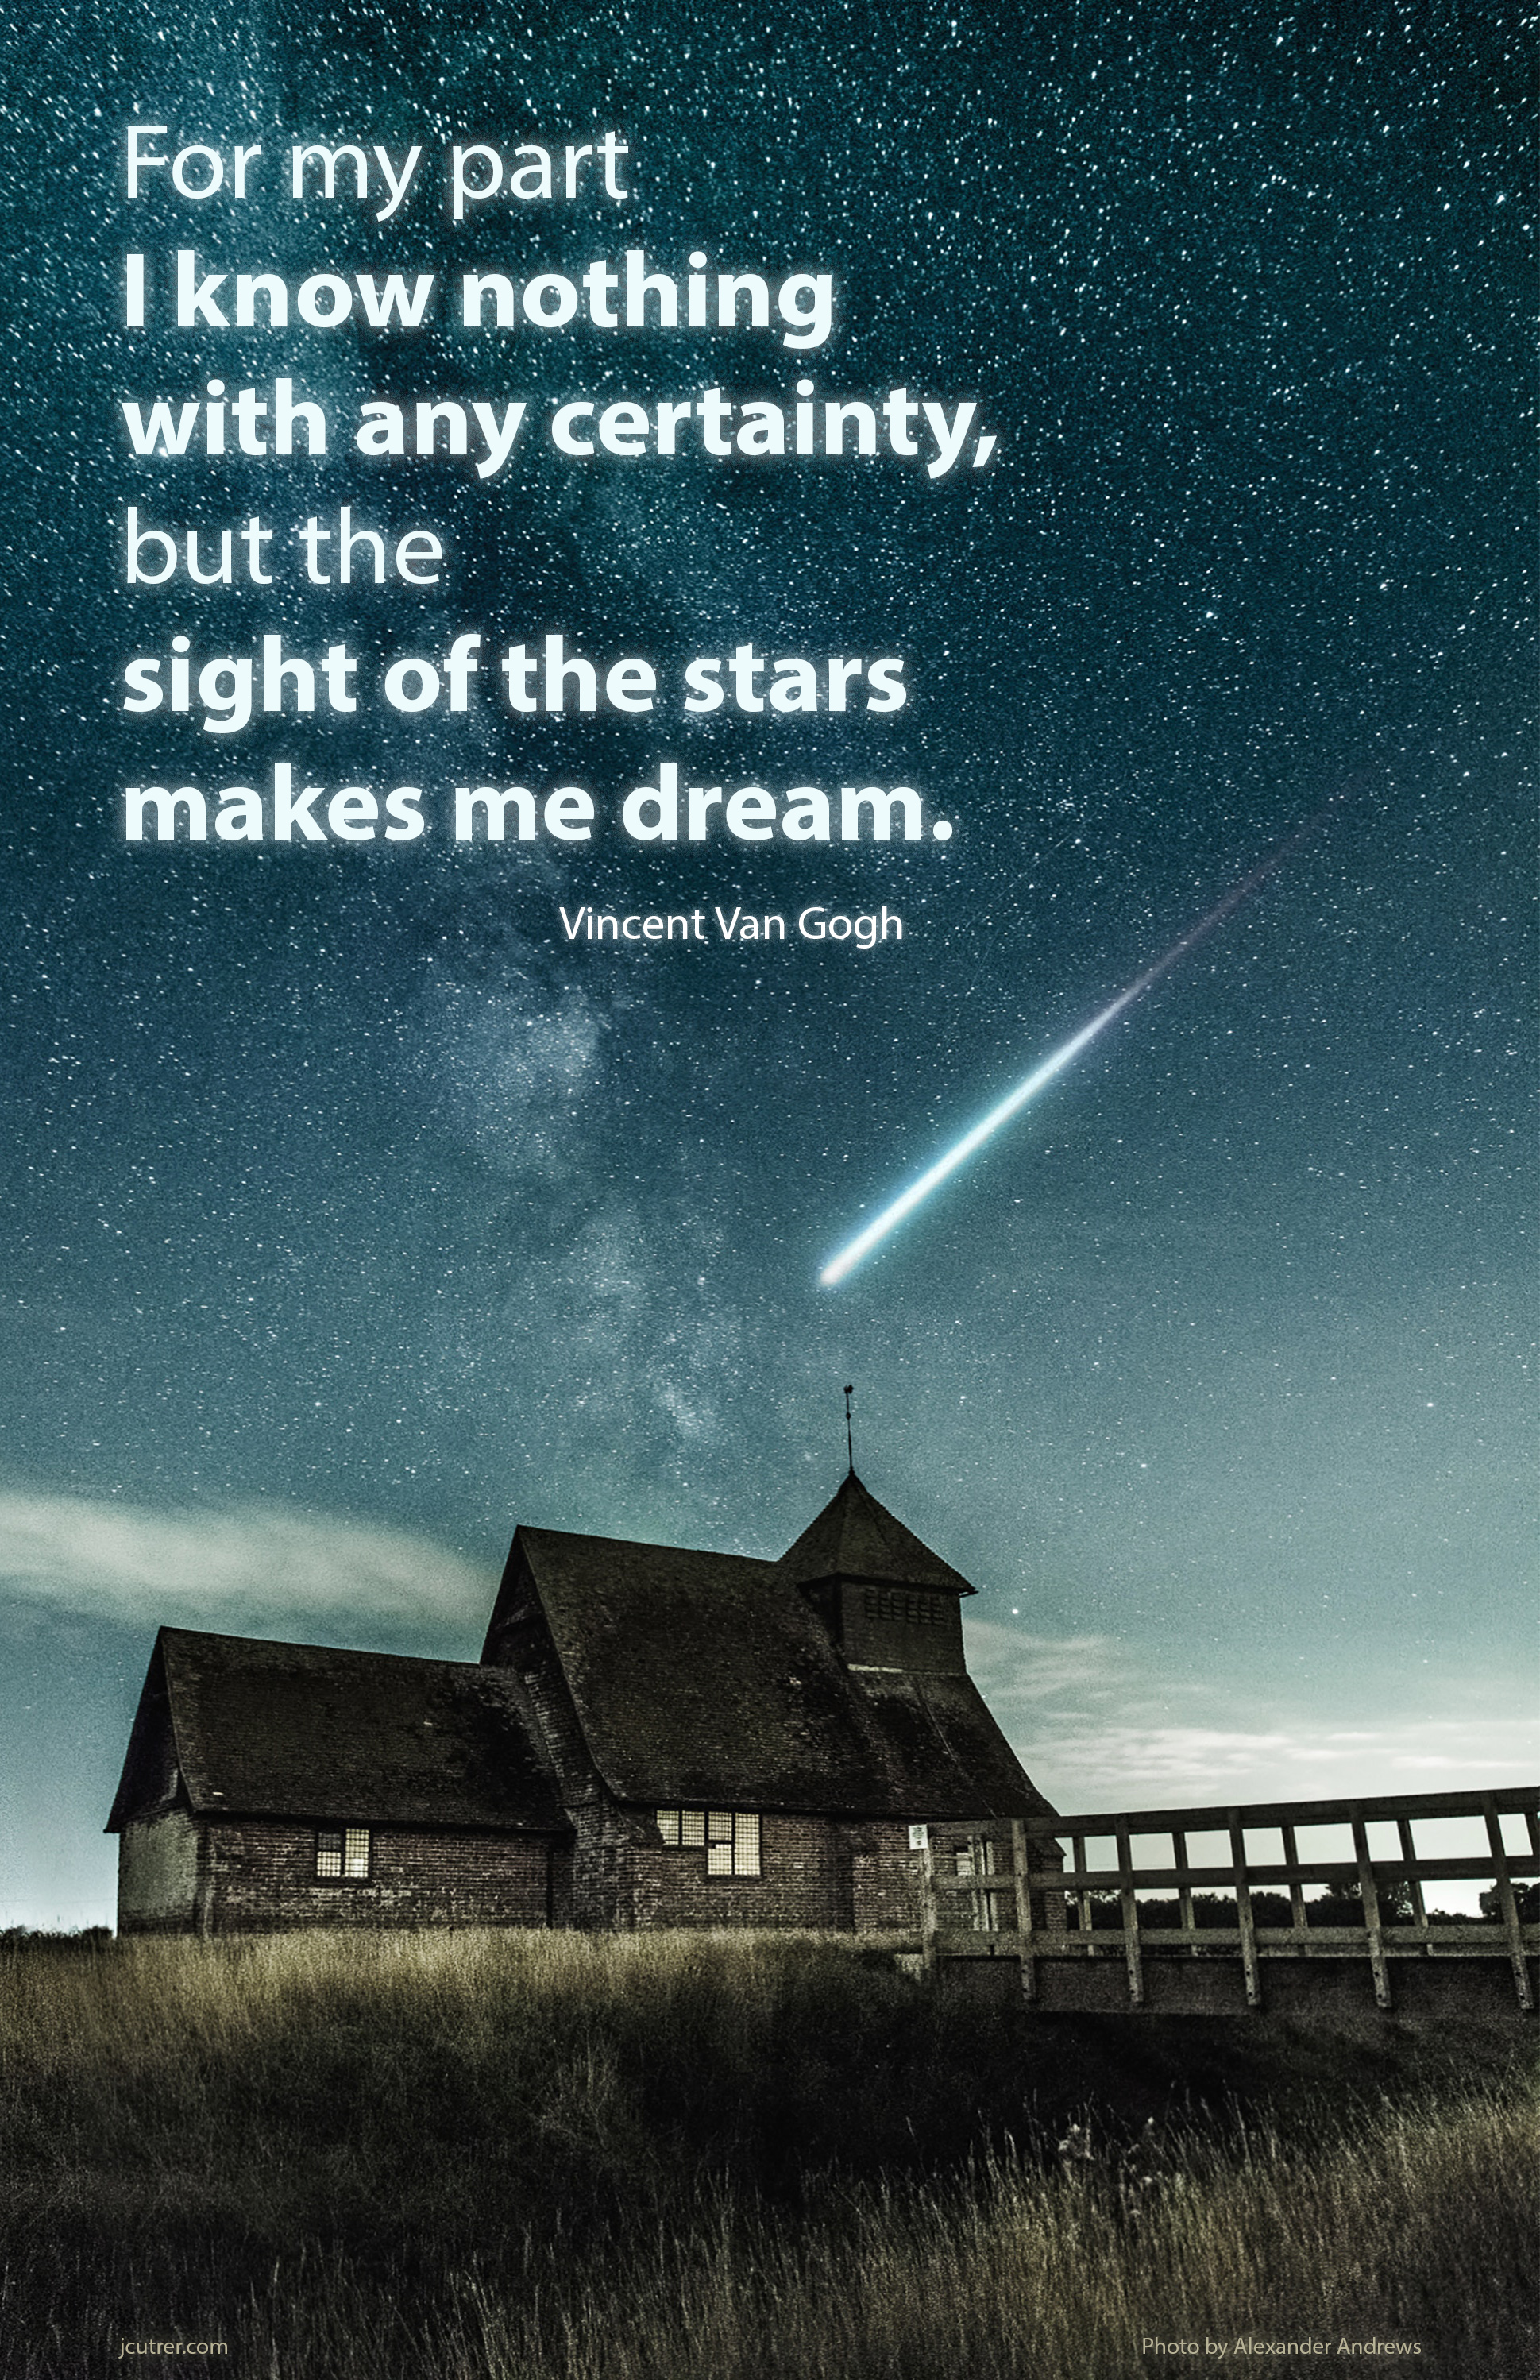 For my part I know nothing with any certainty, but the sight of the stars makes me dream. - Vincent Van Gogh